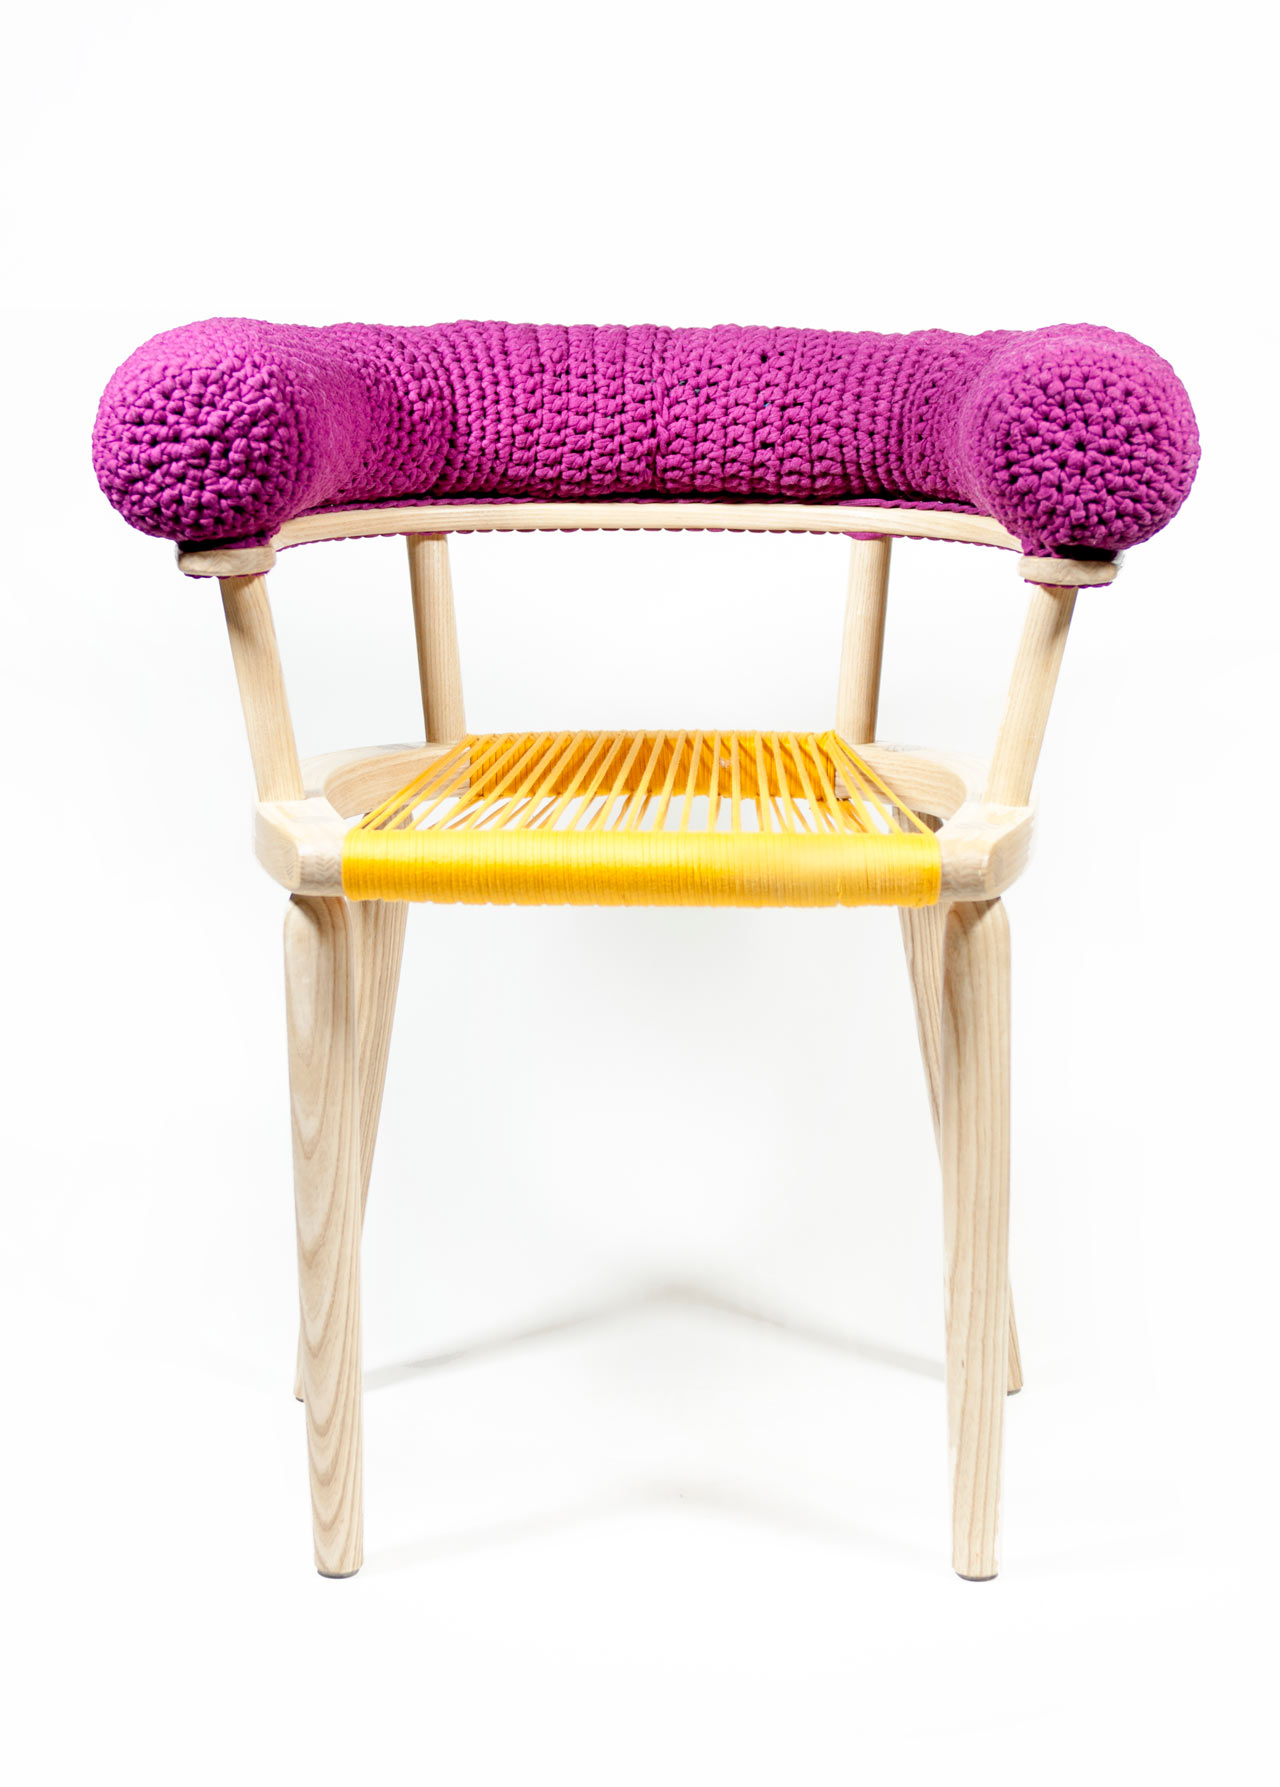 chair accessories design dorm chairs at kohl s handmade furniture and from veegadesign